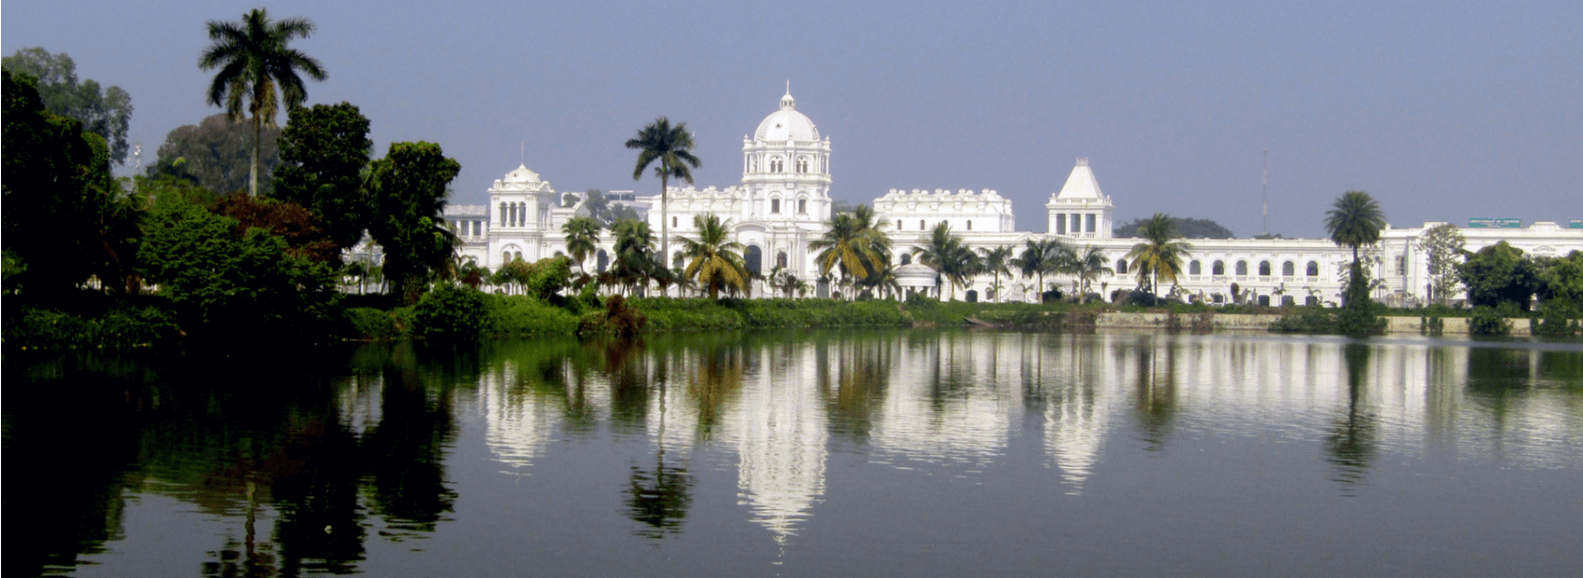 Tripura government museum with view of lake & trees is located in Agartala